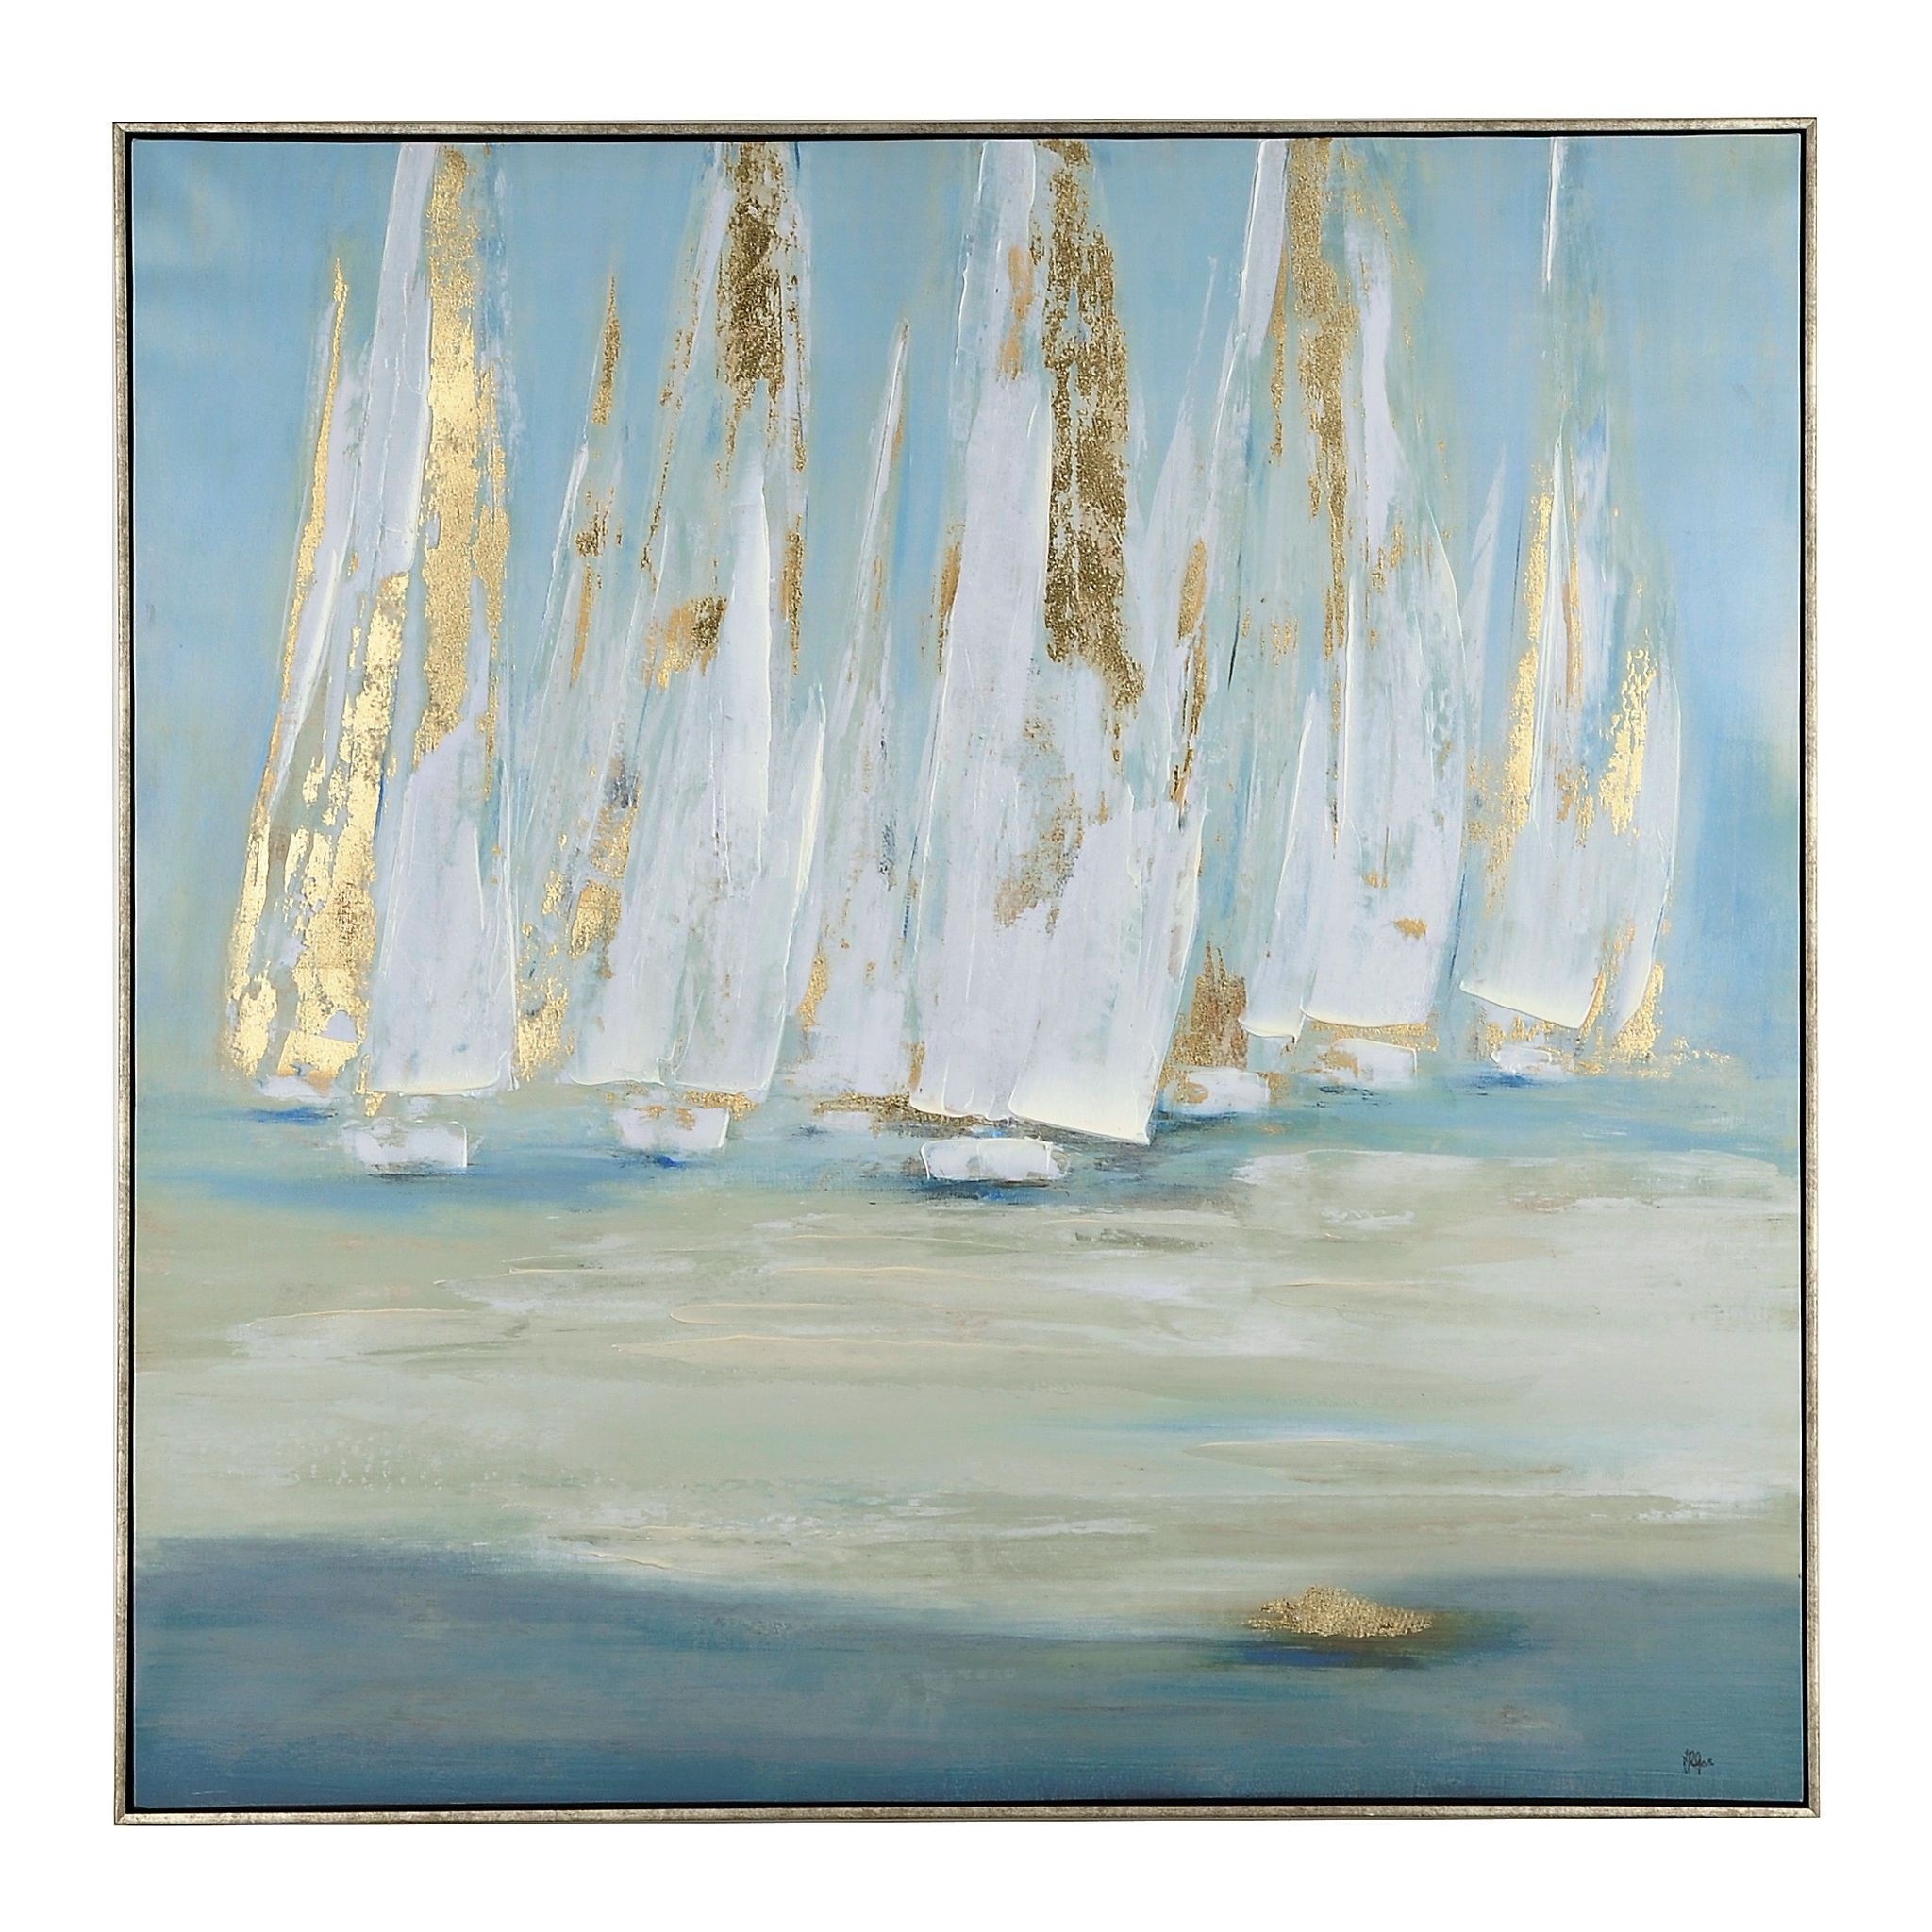 Glimmering Sails Framed Canvas Art Print | Framed Canvas, Canvases With Regard To Best And Newest Gold Coast Framed Art Prints (View 13 of 15)